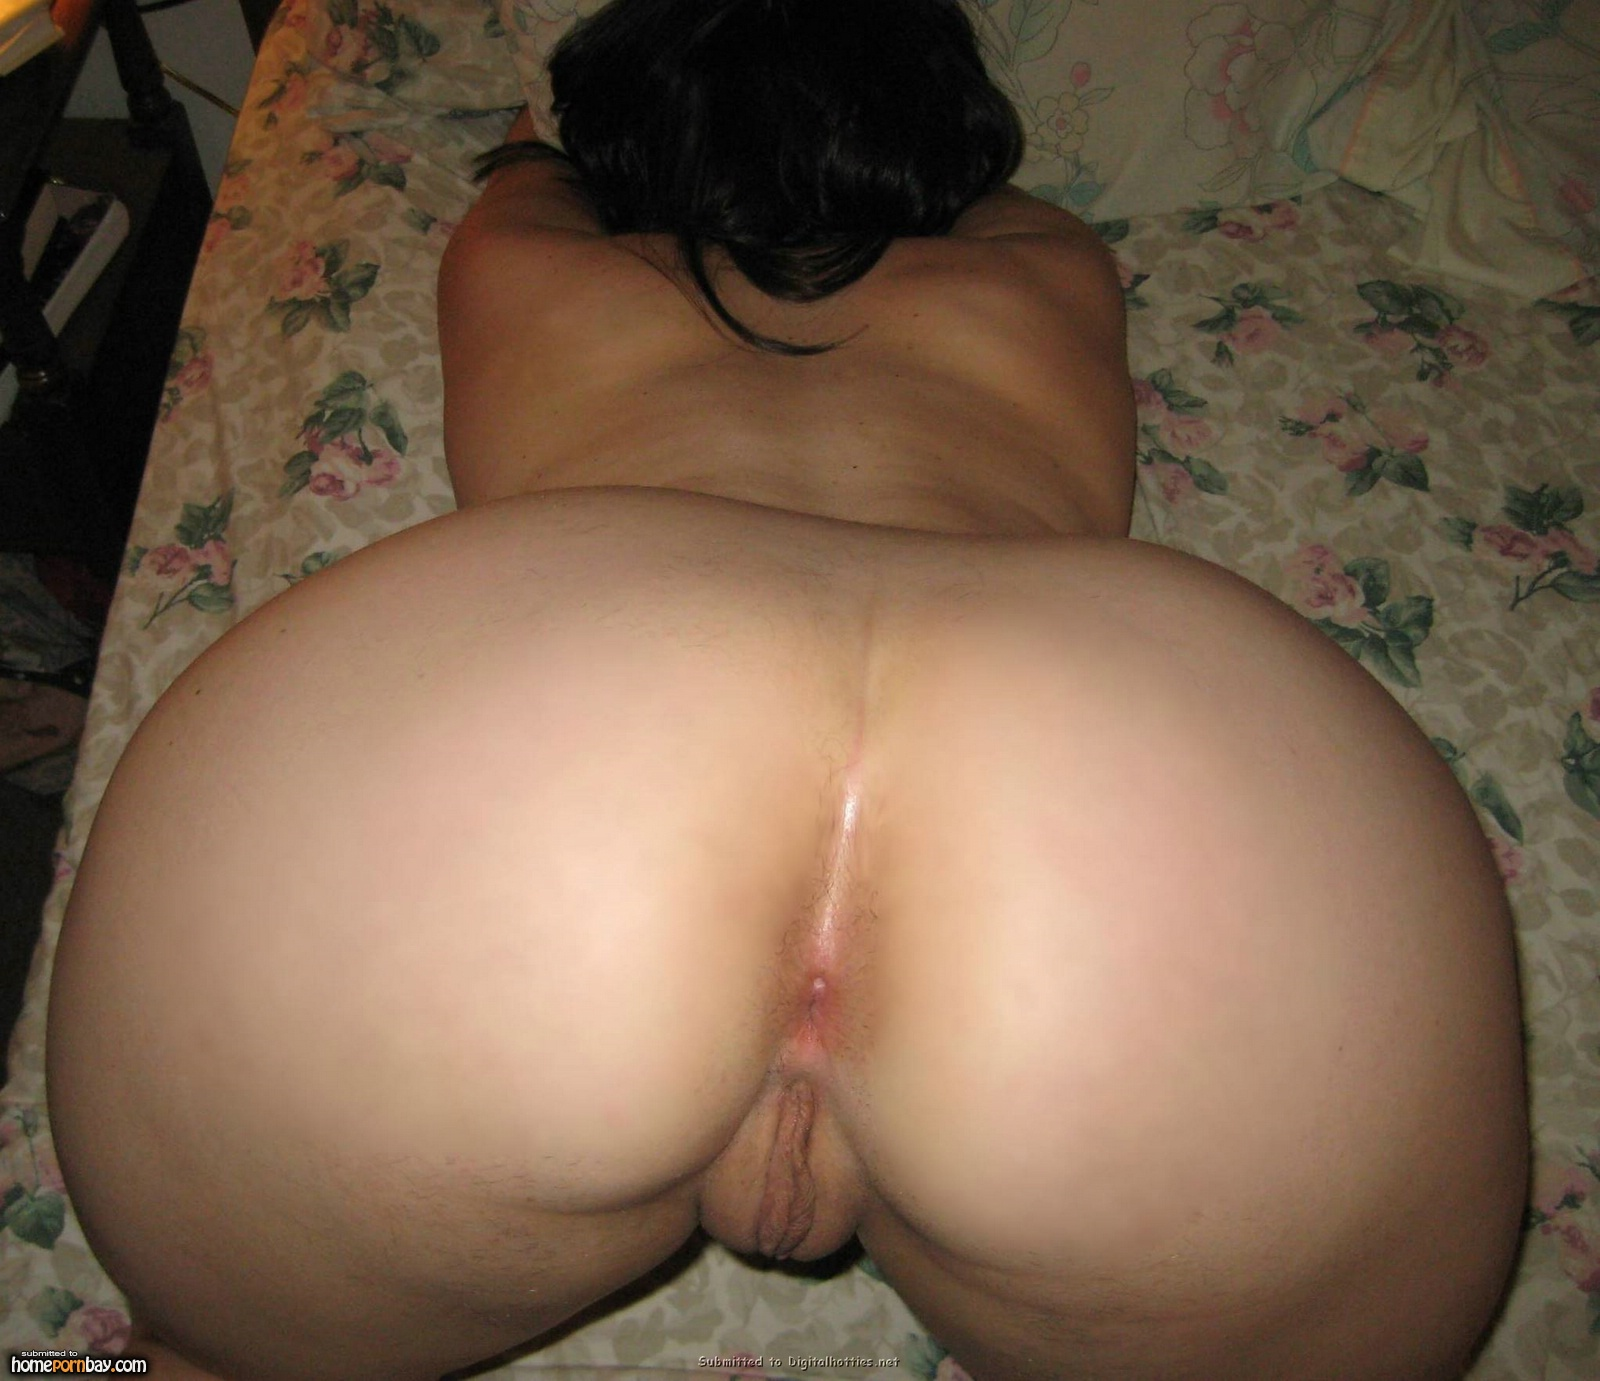 Naked wife ass photo